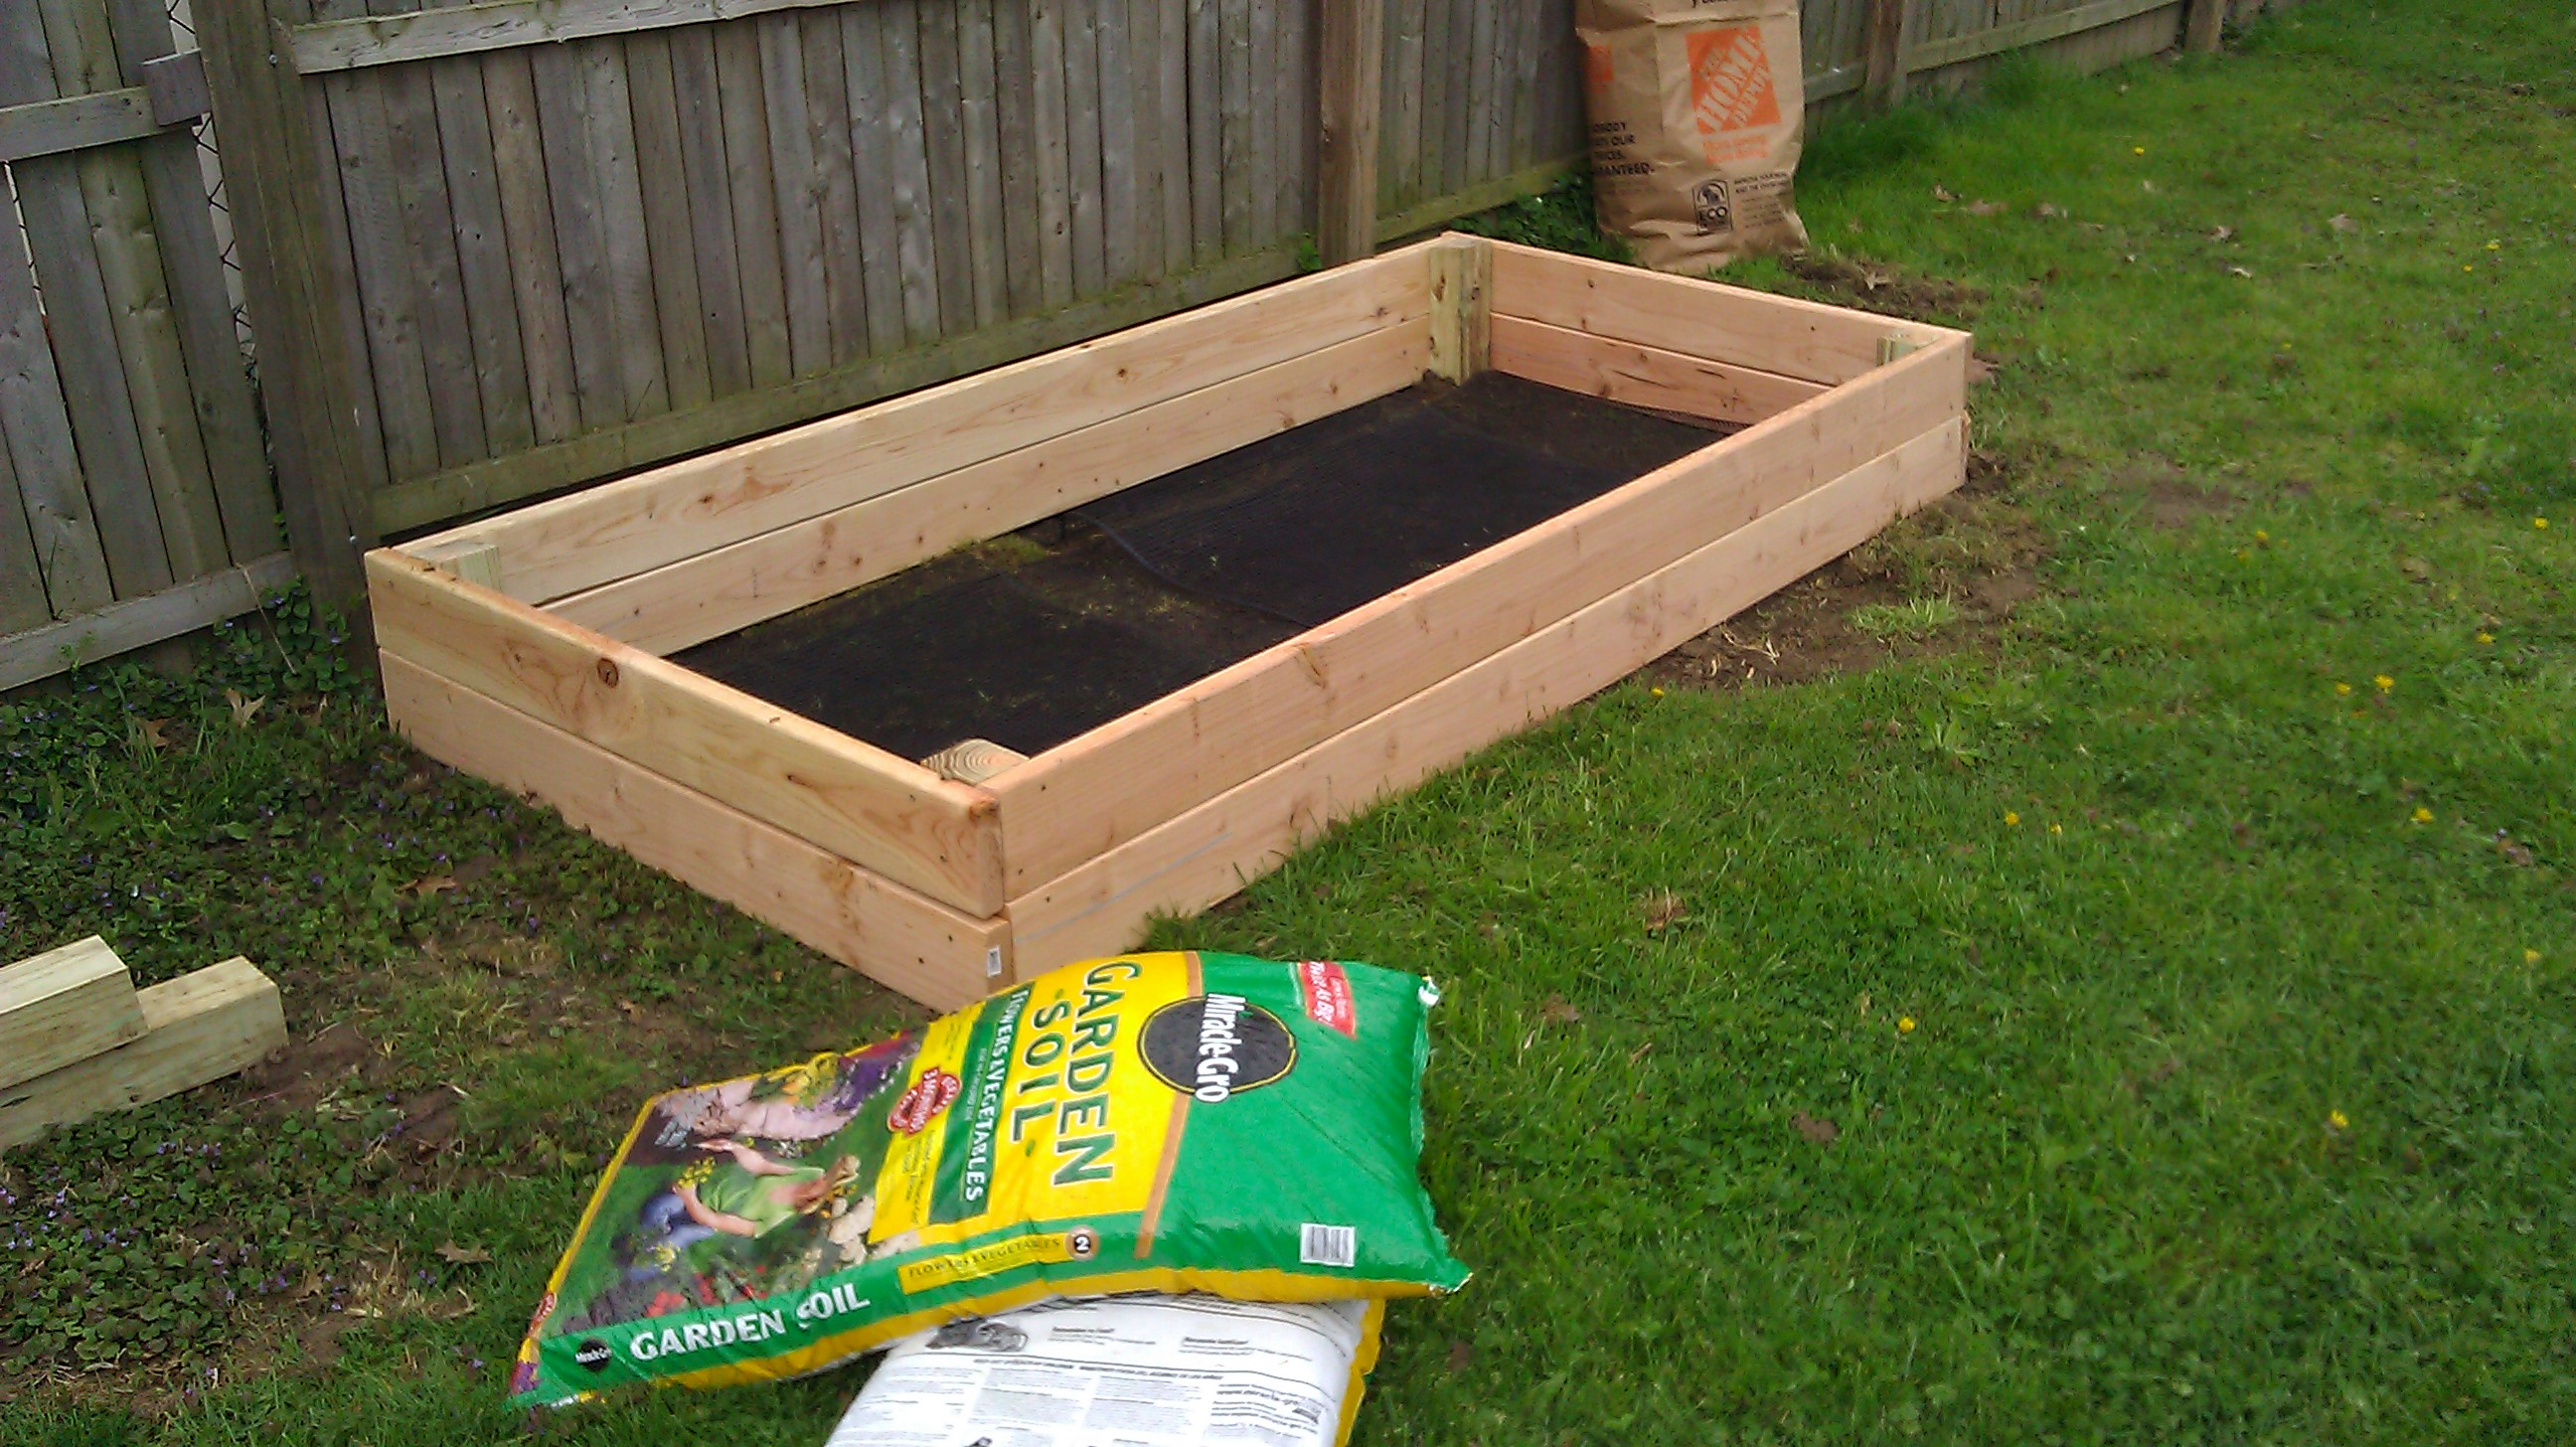 Instructions For Making Raised Garden Beds Raised Garden Bed Part 2 Success Mandy 39s Marvelous Meals